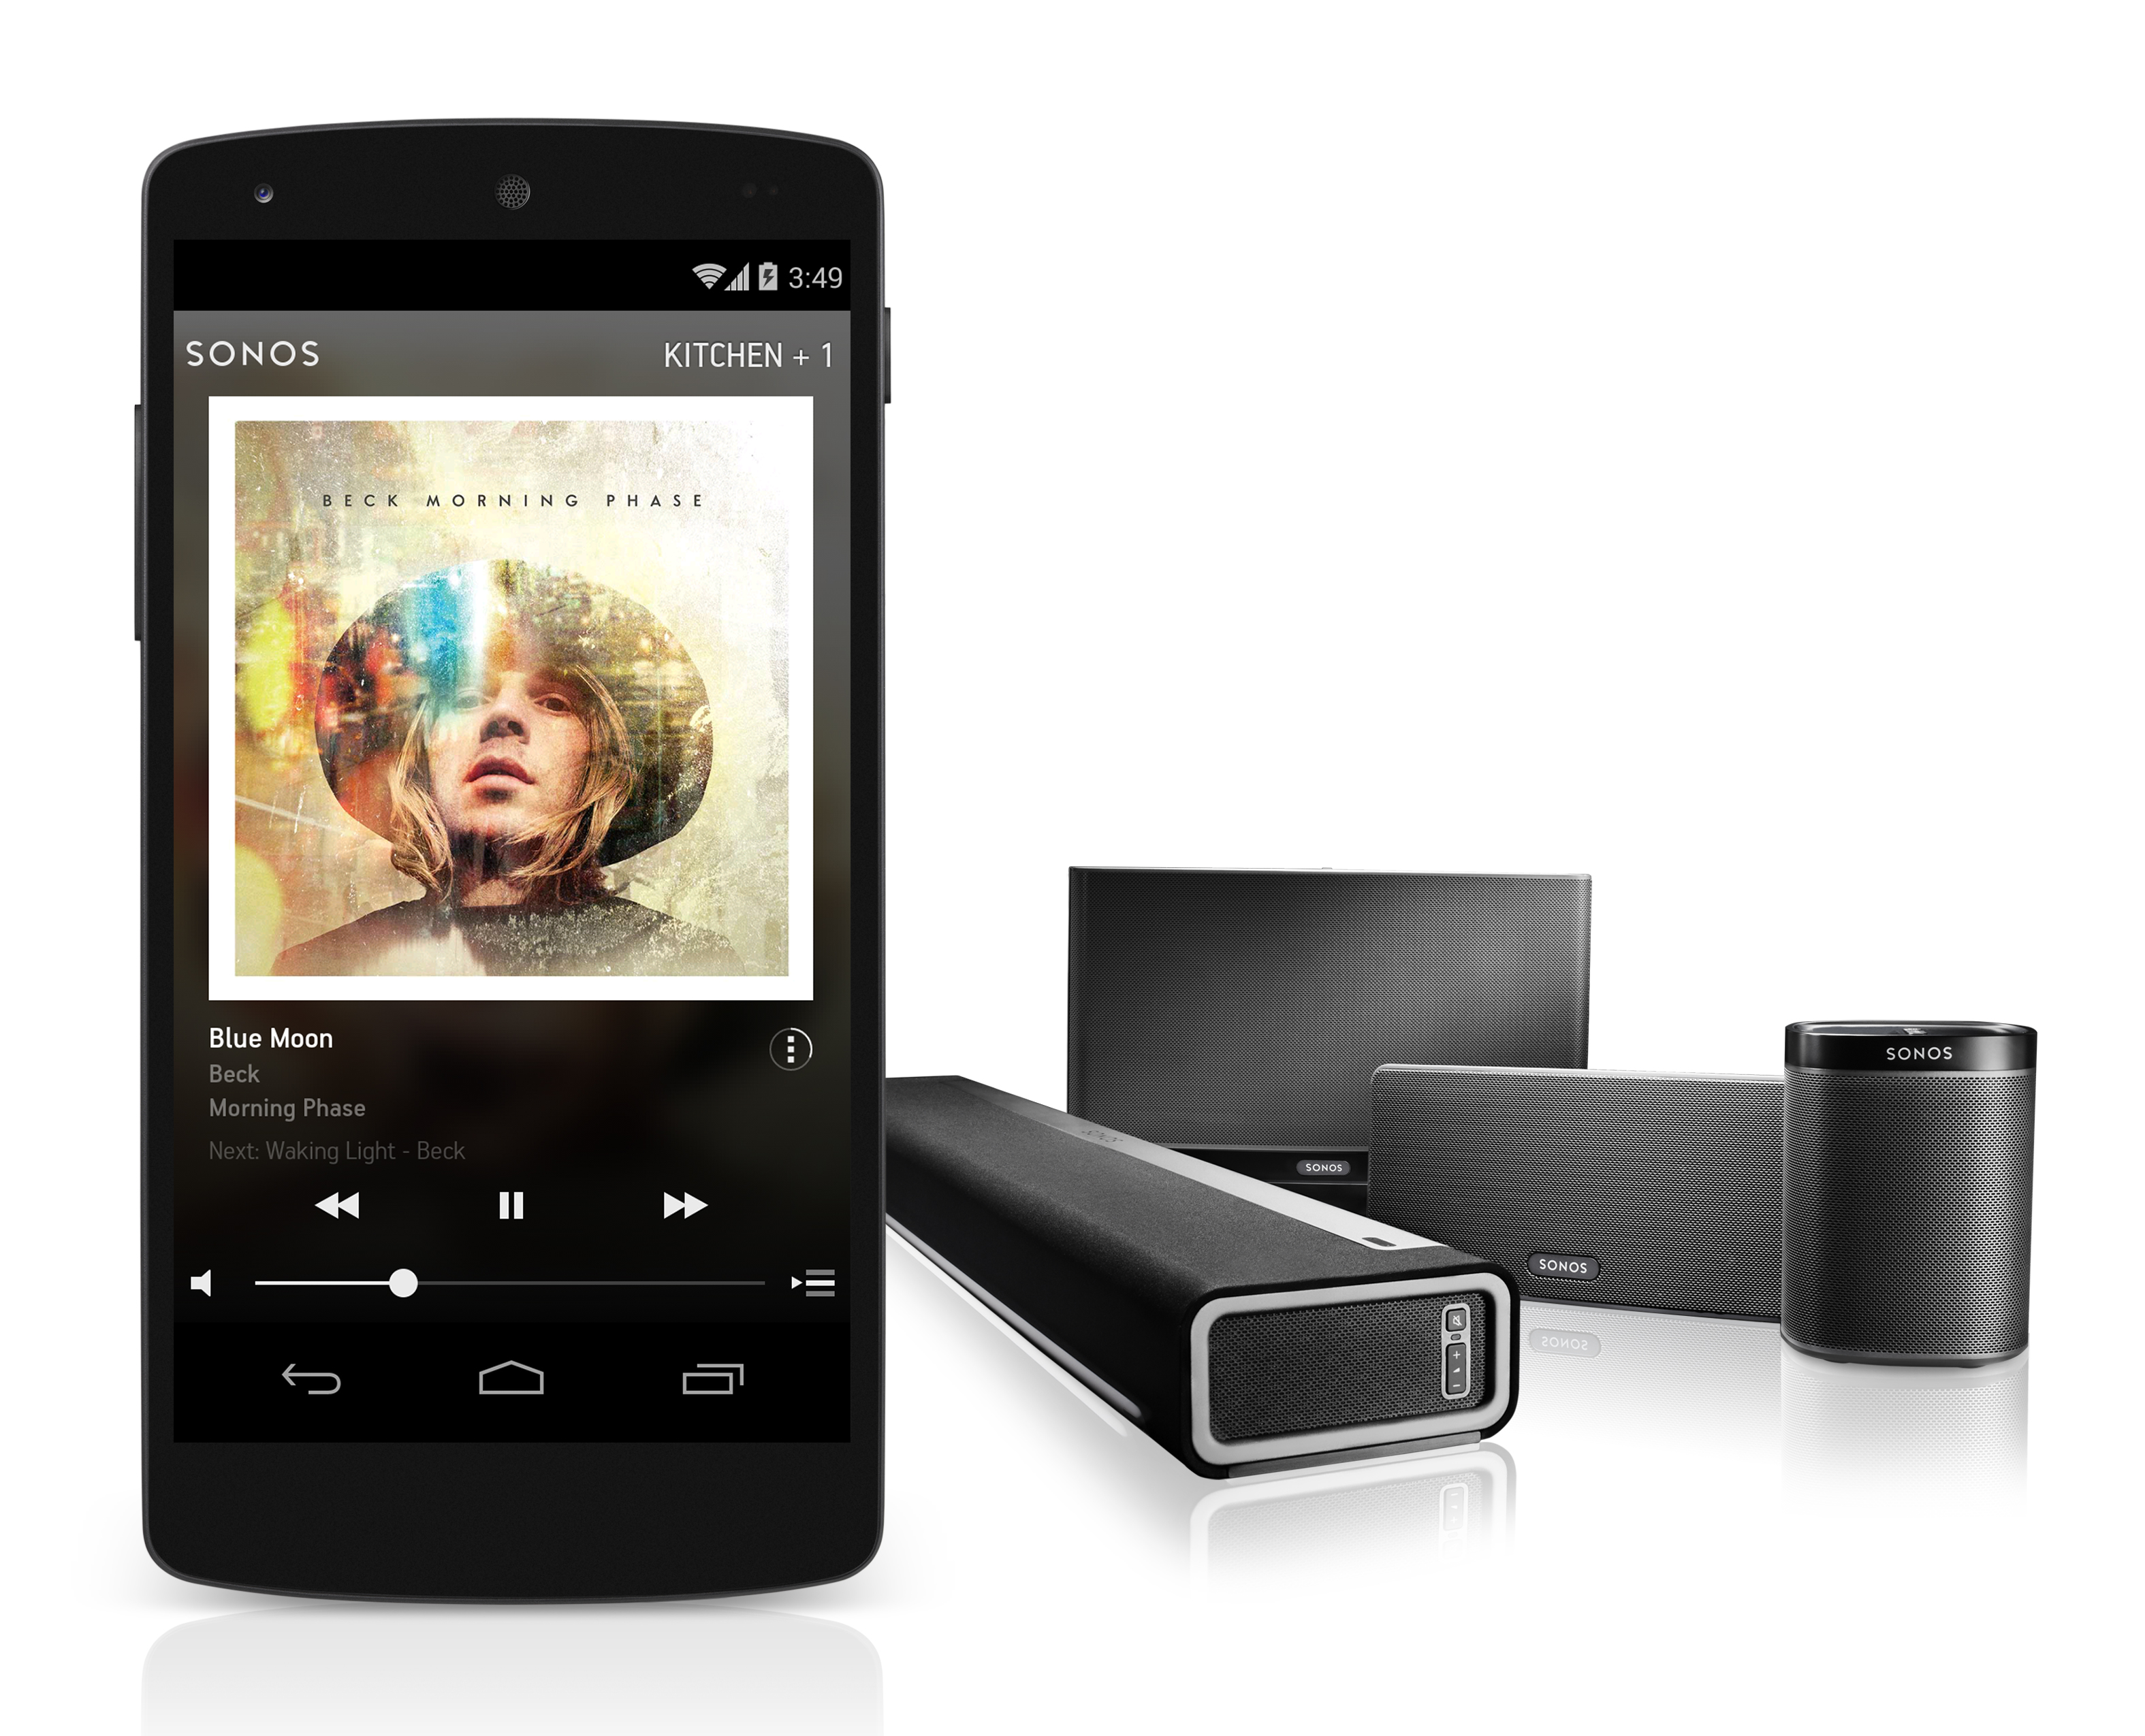 Sonos Adds Support for Google Play Music with Direct Playback